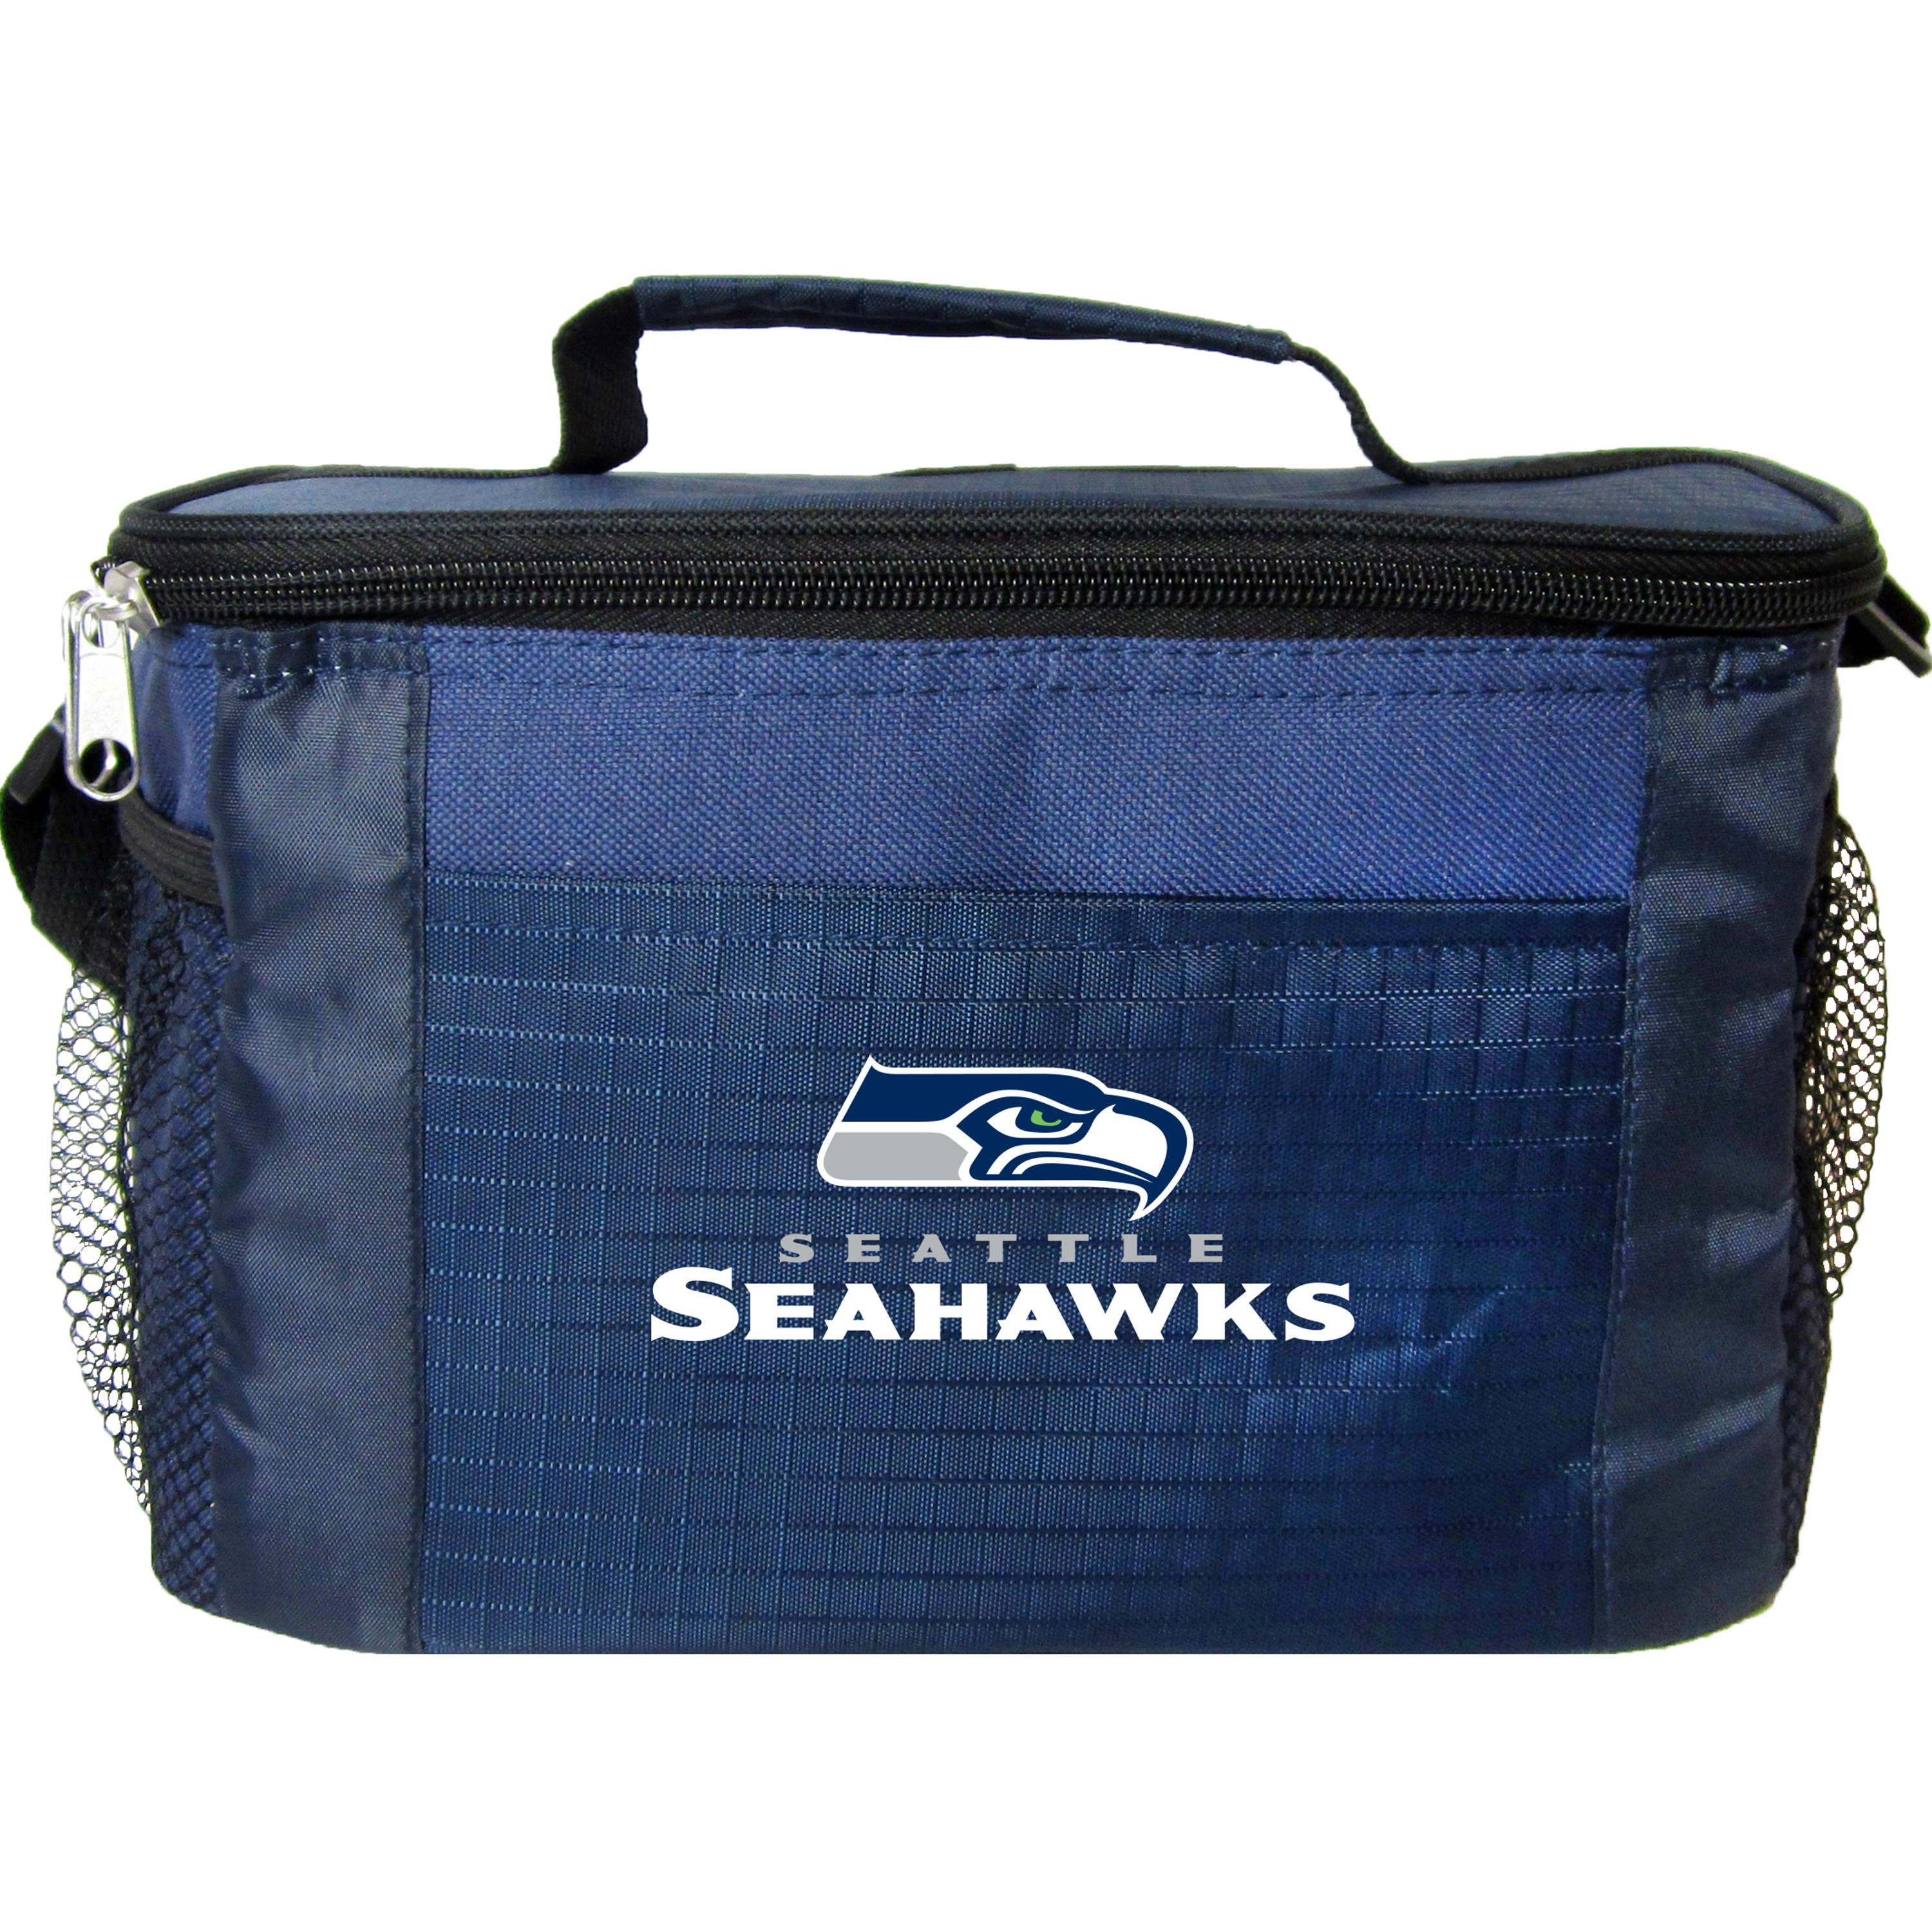 Seattle Seahawks - 6pk Cooler Bag